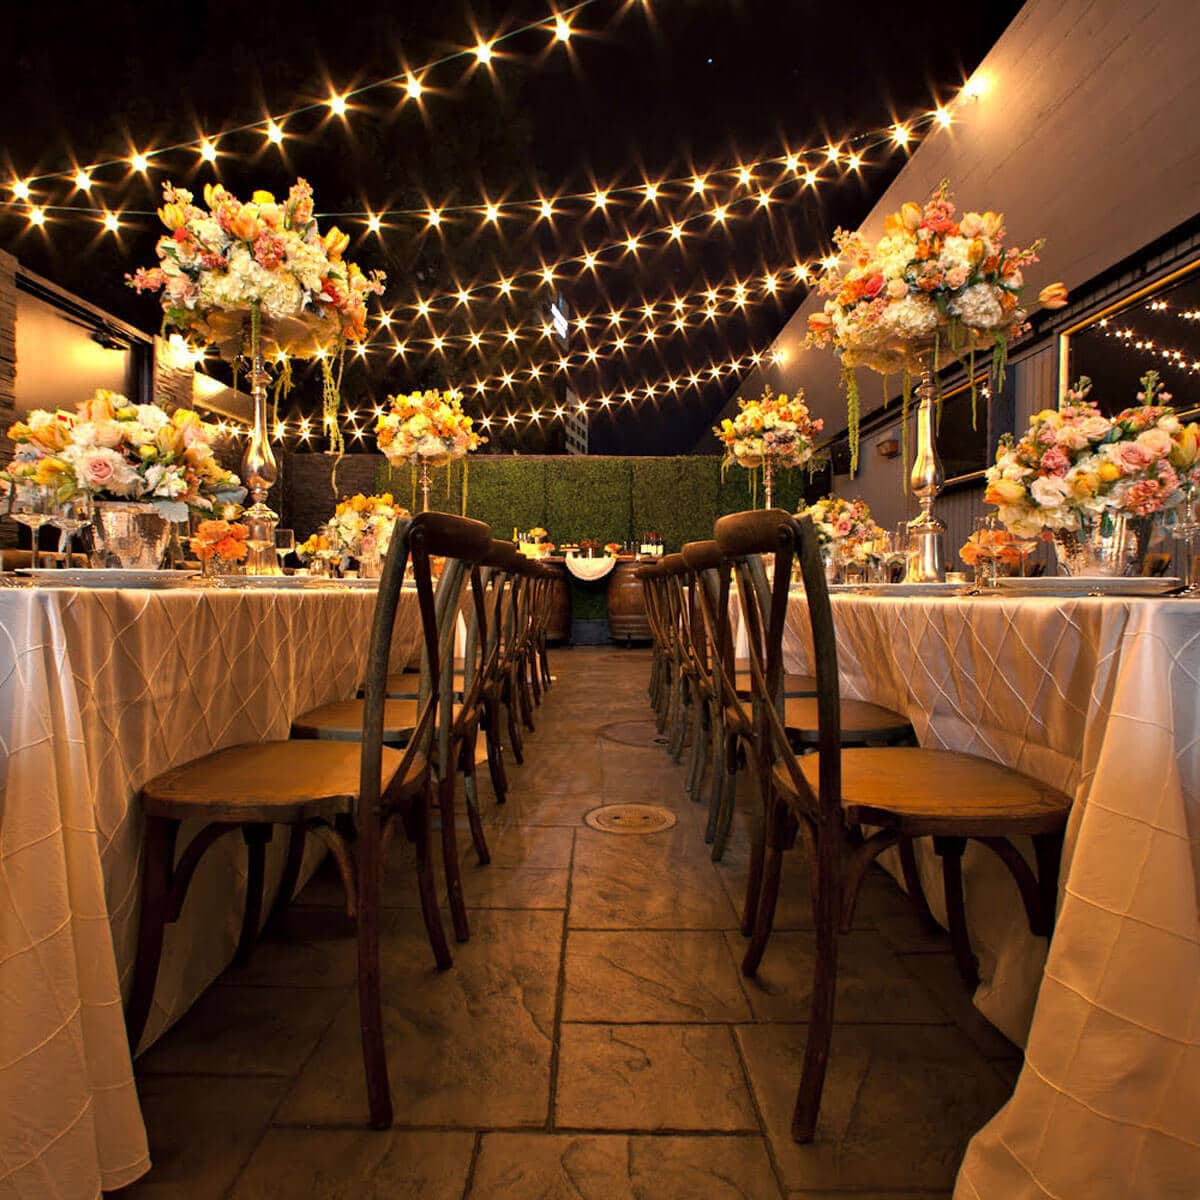 Table And Chair Rentals Prices Party Furniture Rental Indoor Outdoor For Parties